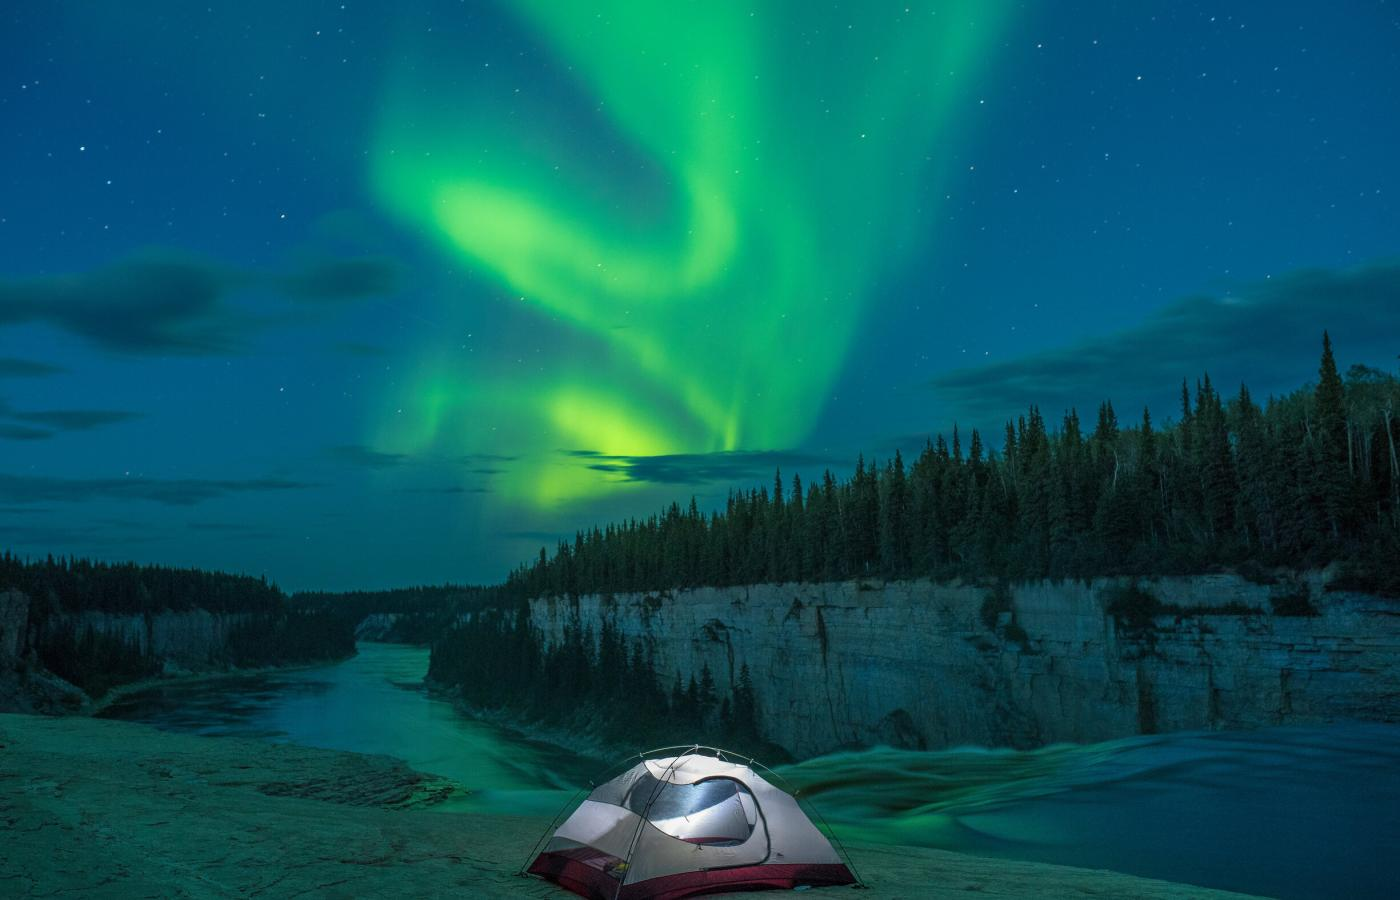 Horton River camping in a tent with the Northern Lights in the sky above